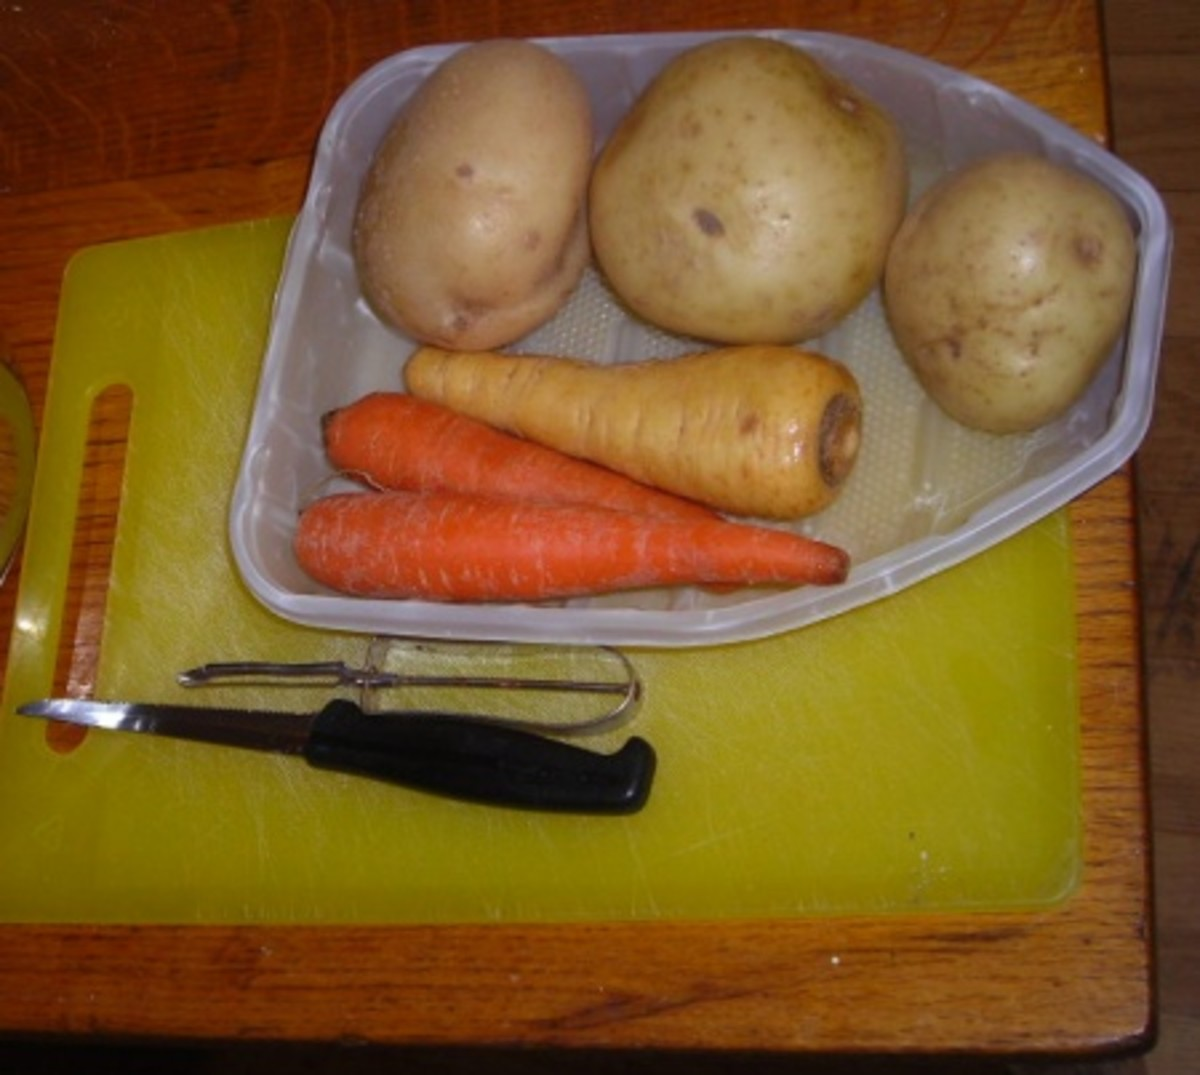 Potatoes, carrots and parsnips